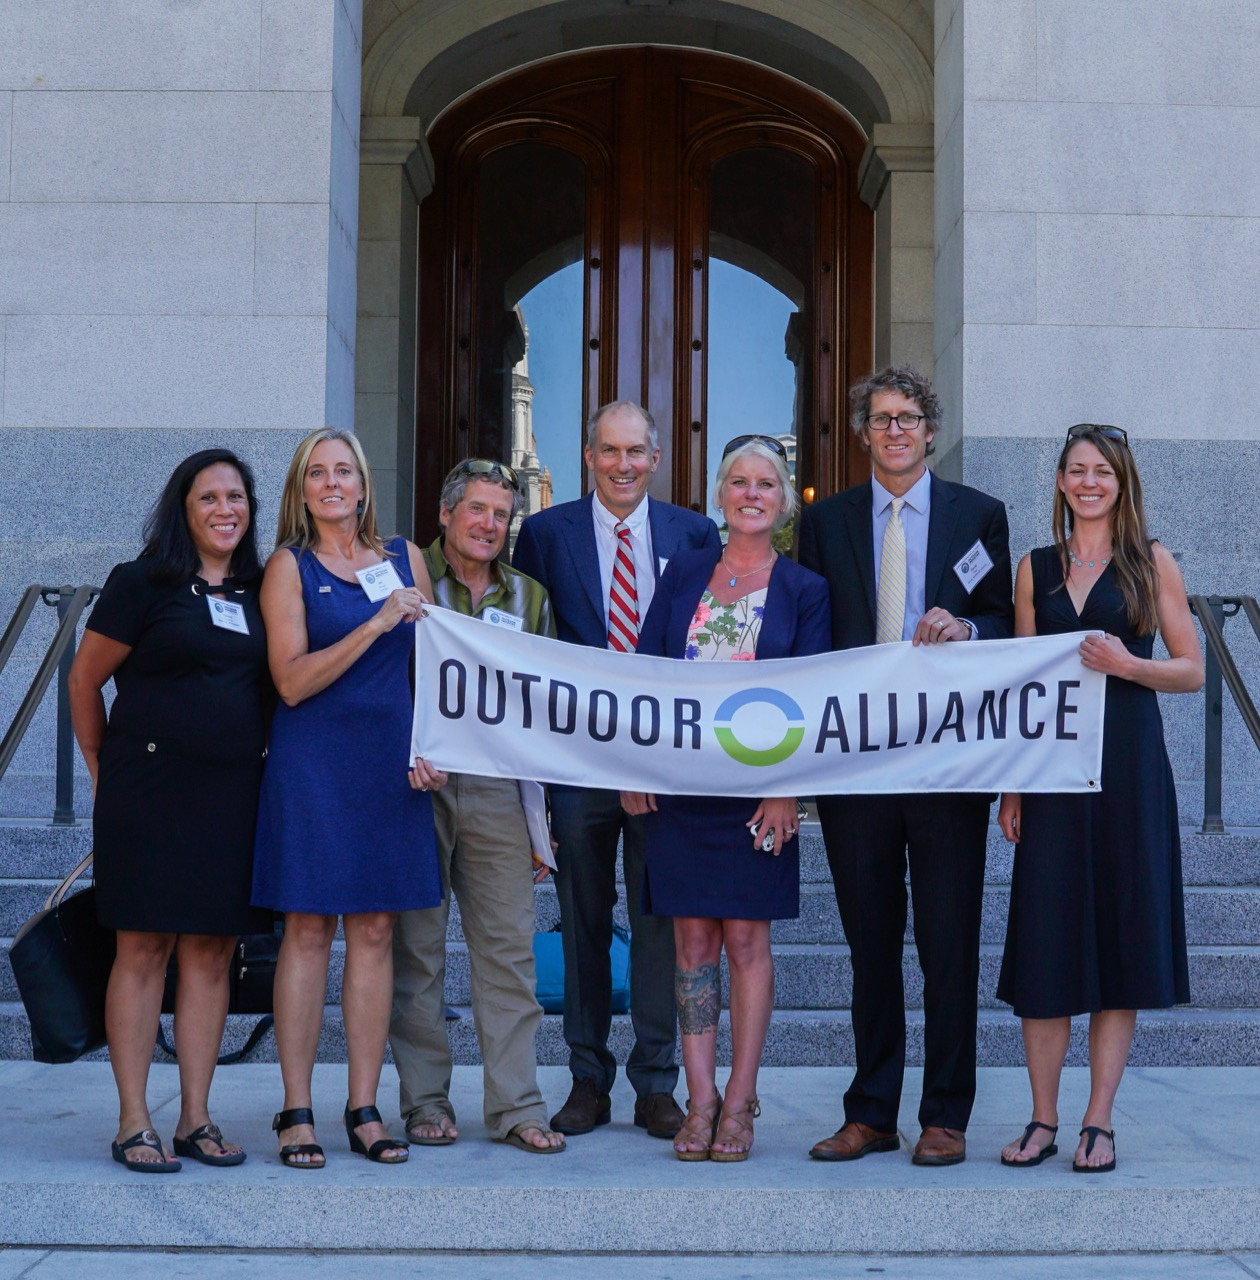 Outdoor Alliance calls for Office of Outdoor Recreation